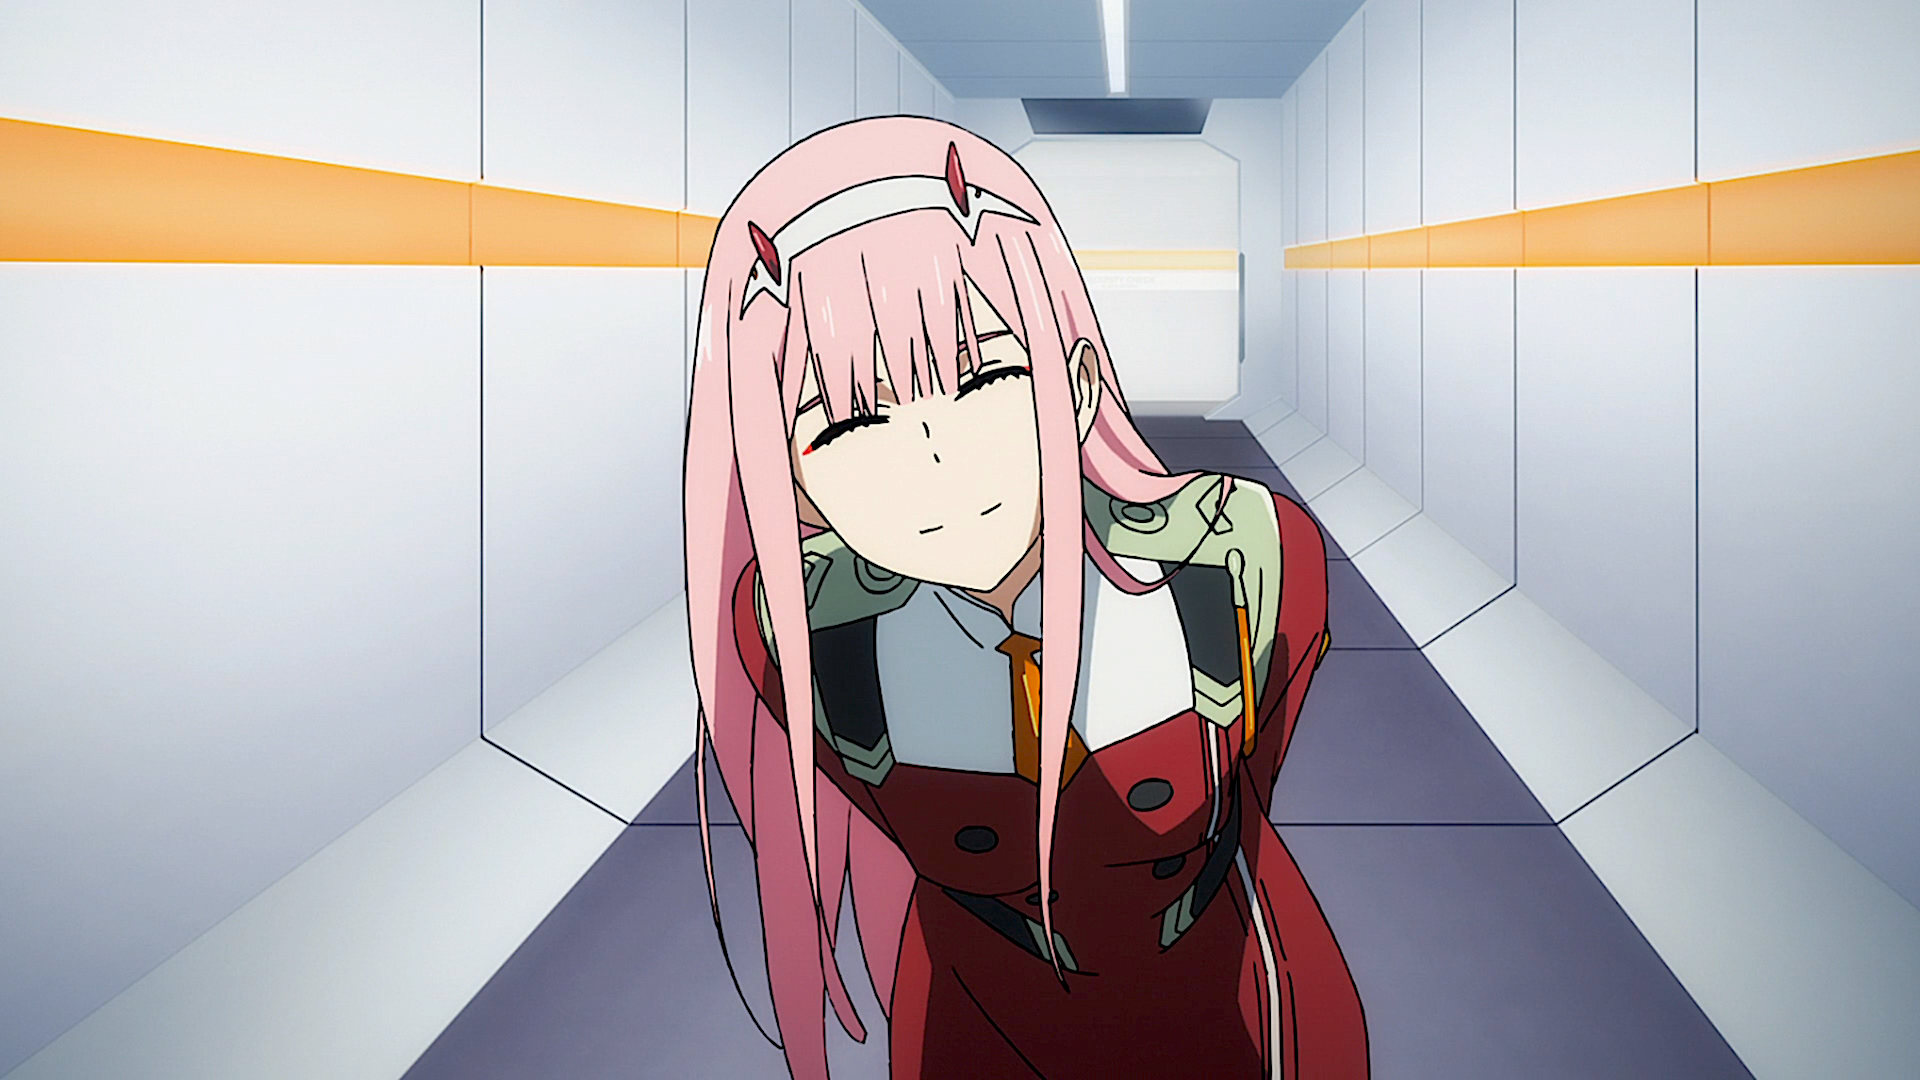 Anime Darling in the FranXX Zero Two (Darling in the